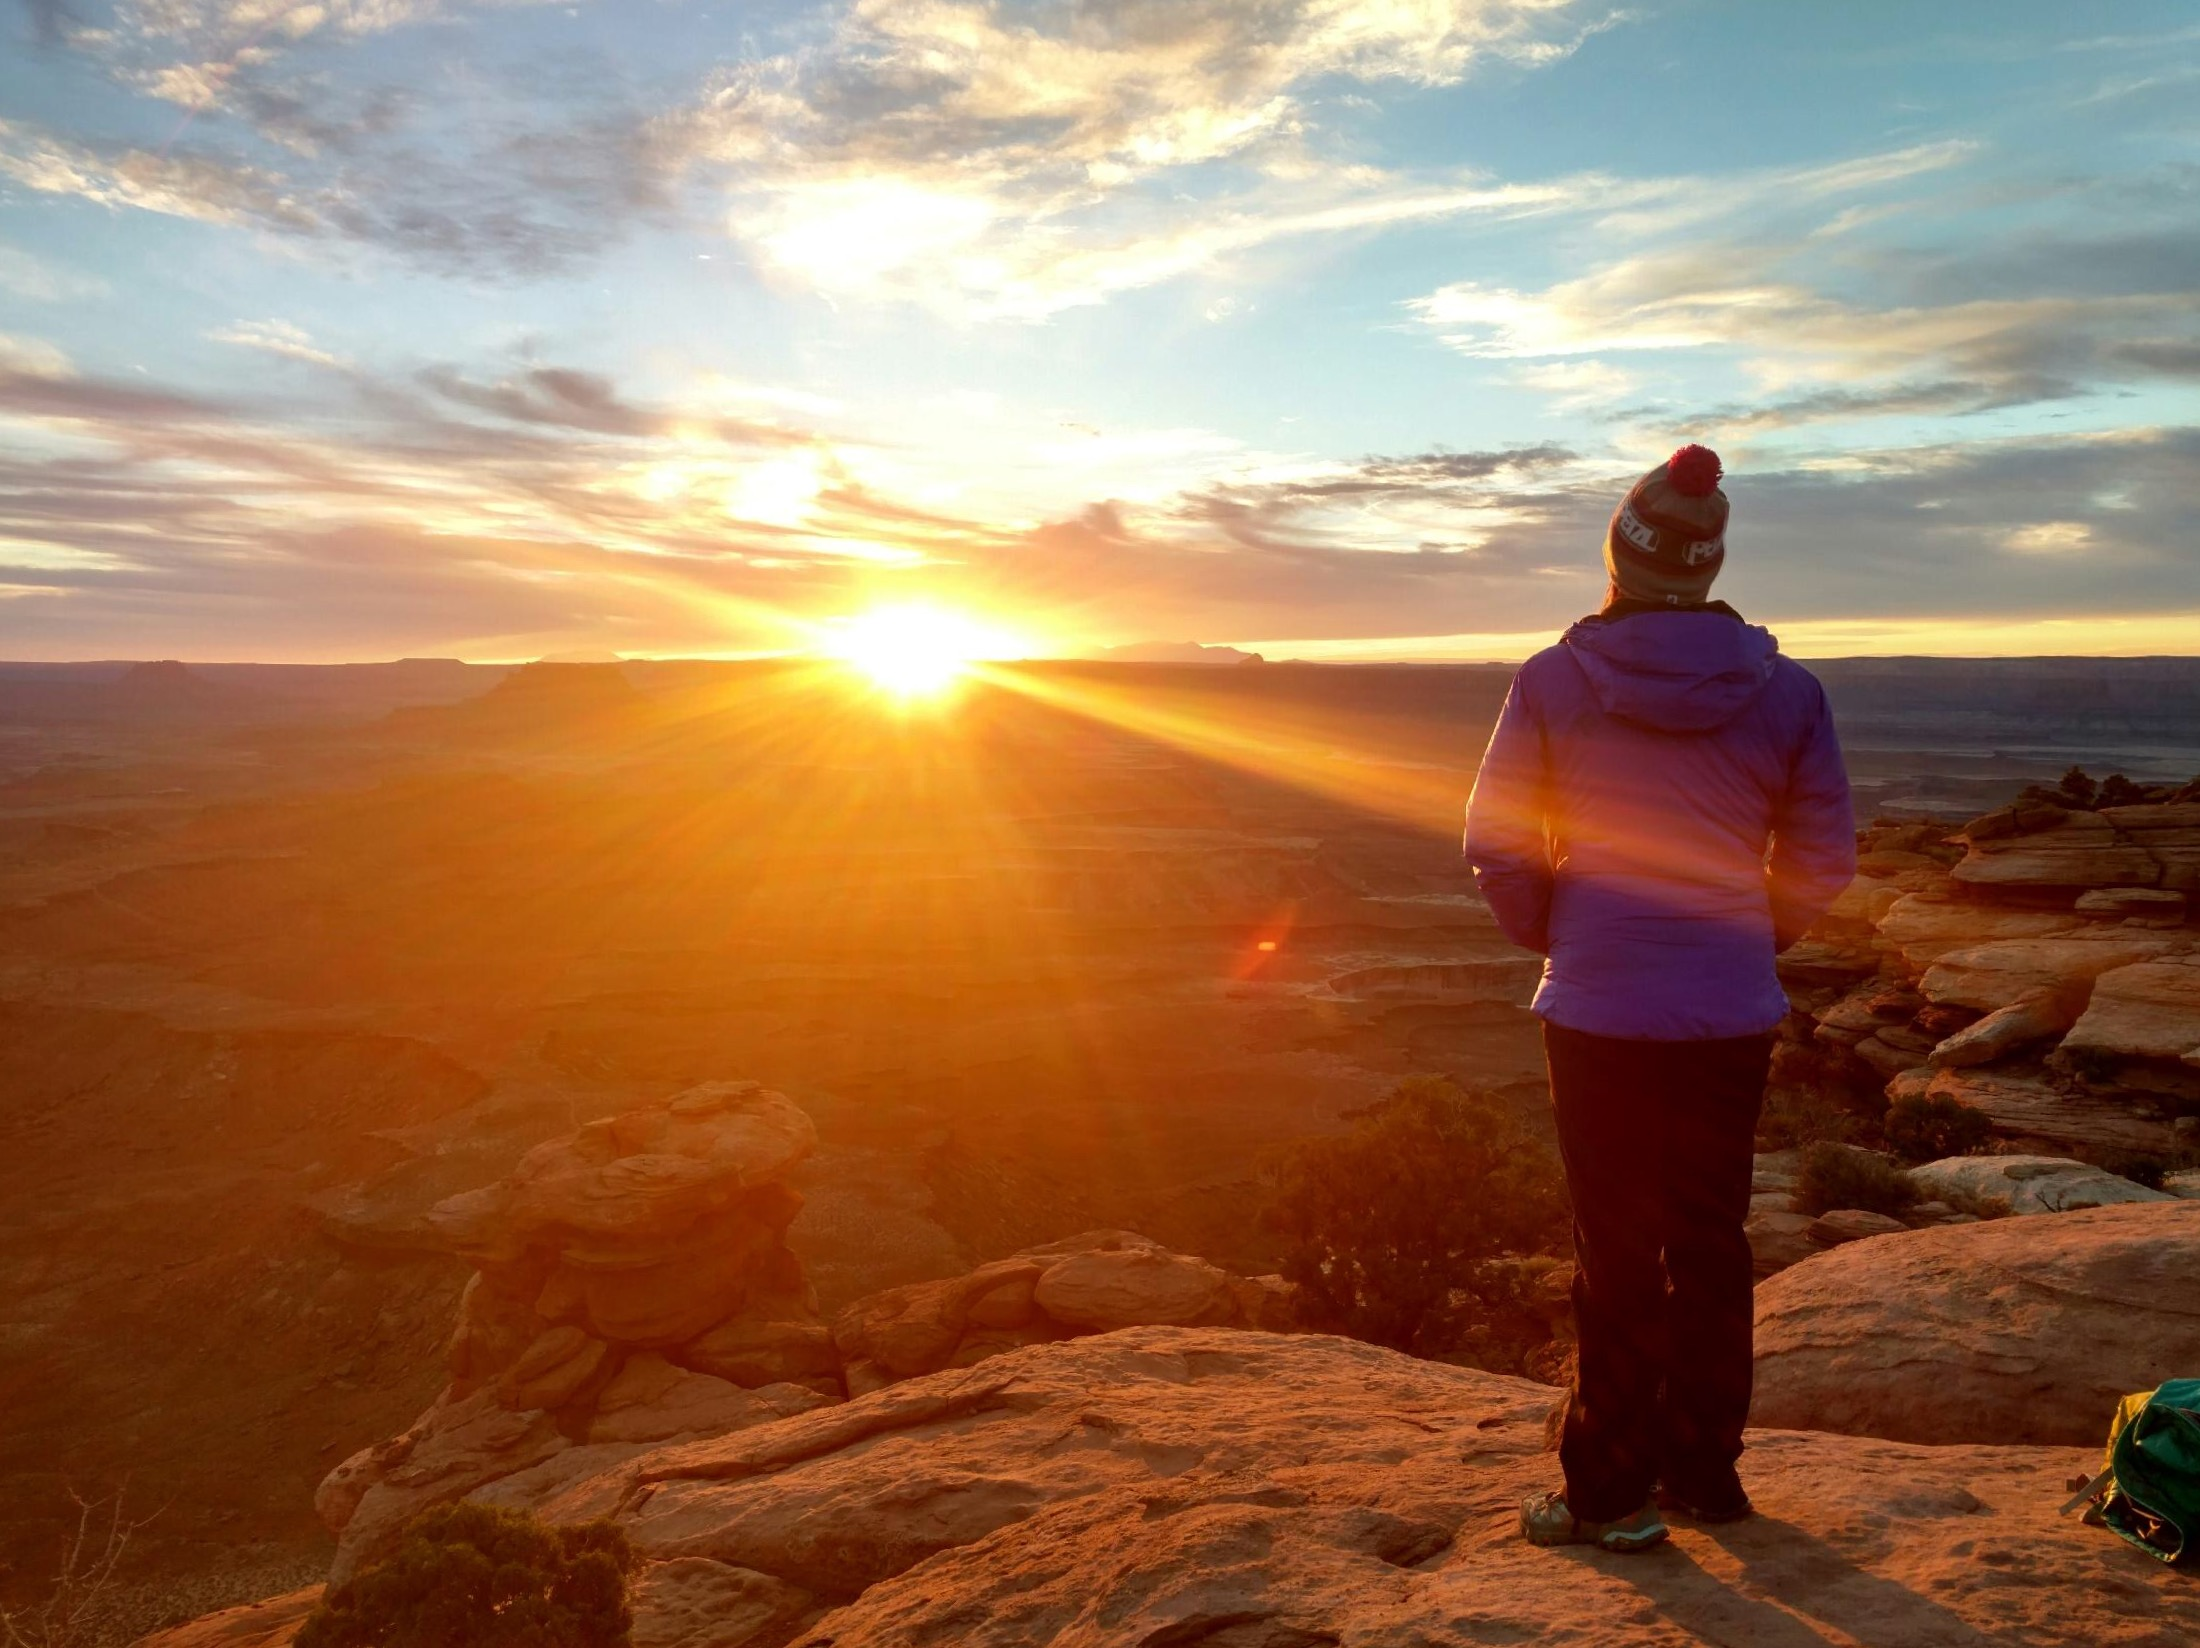 desert_canyonlands-sunset